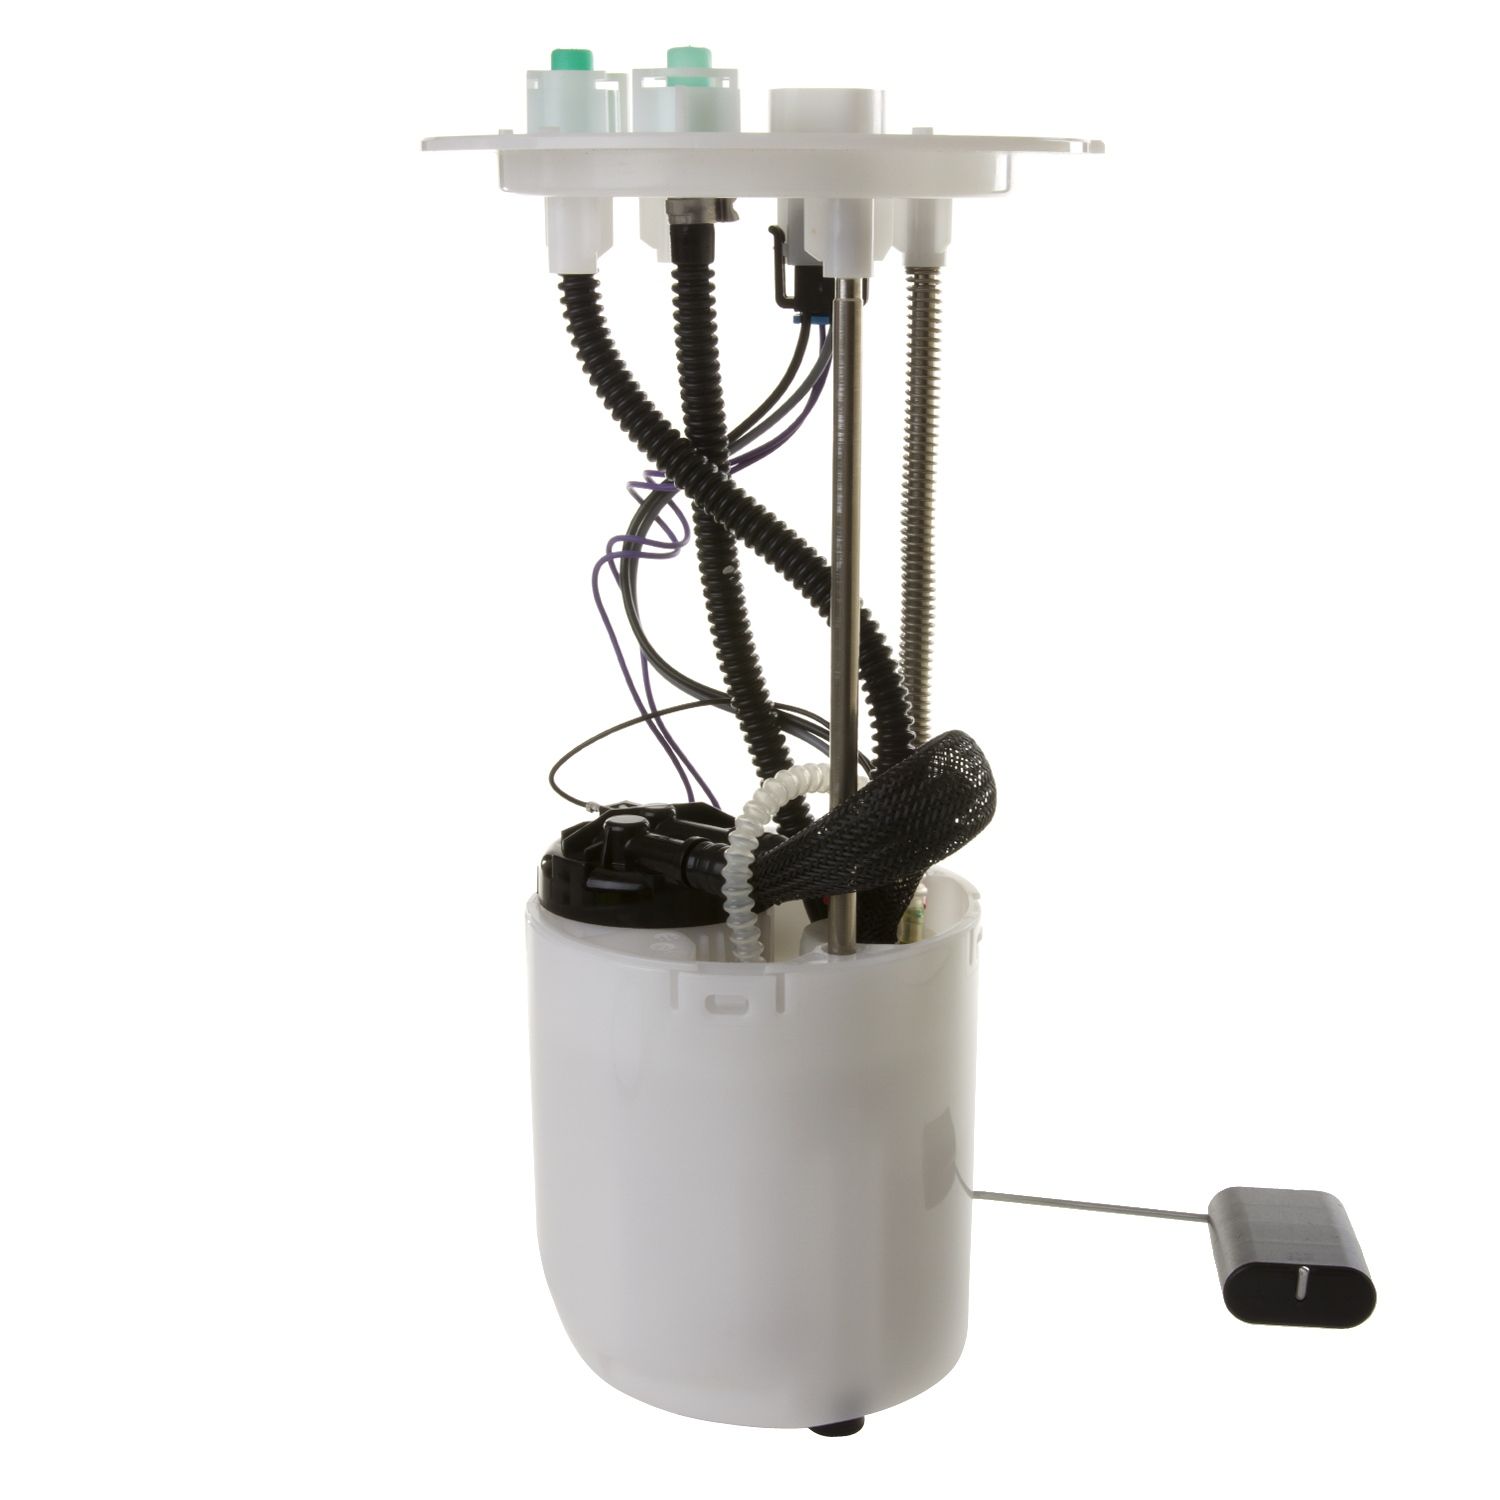 DELPHI - Fuel Pump Module Assembly - DPH FG0919